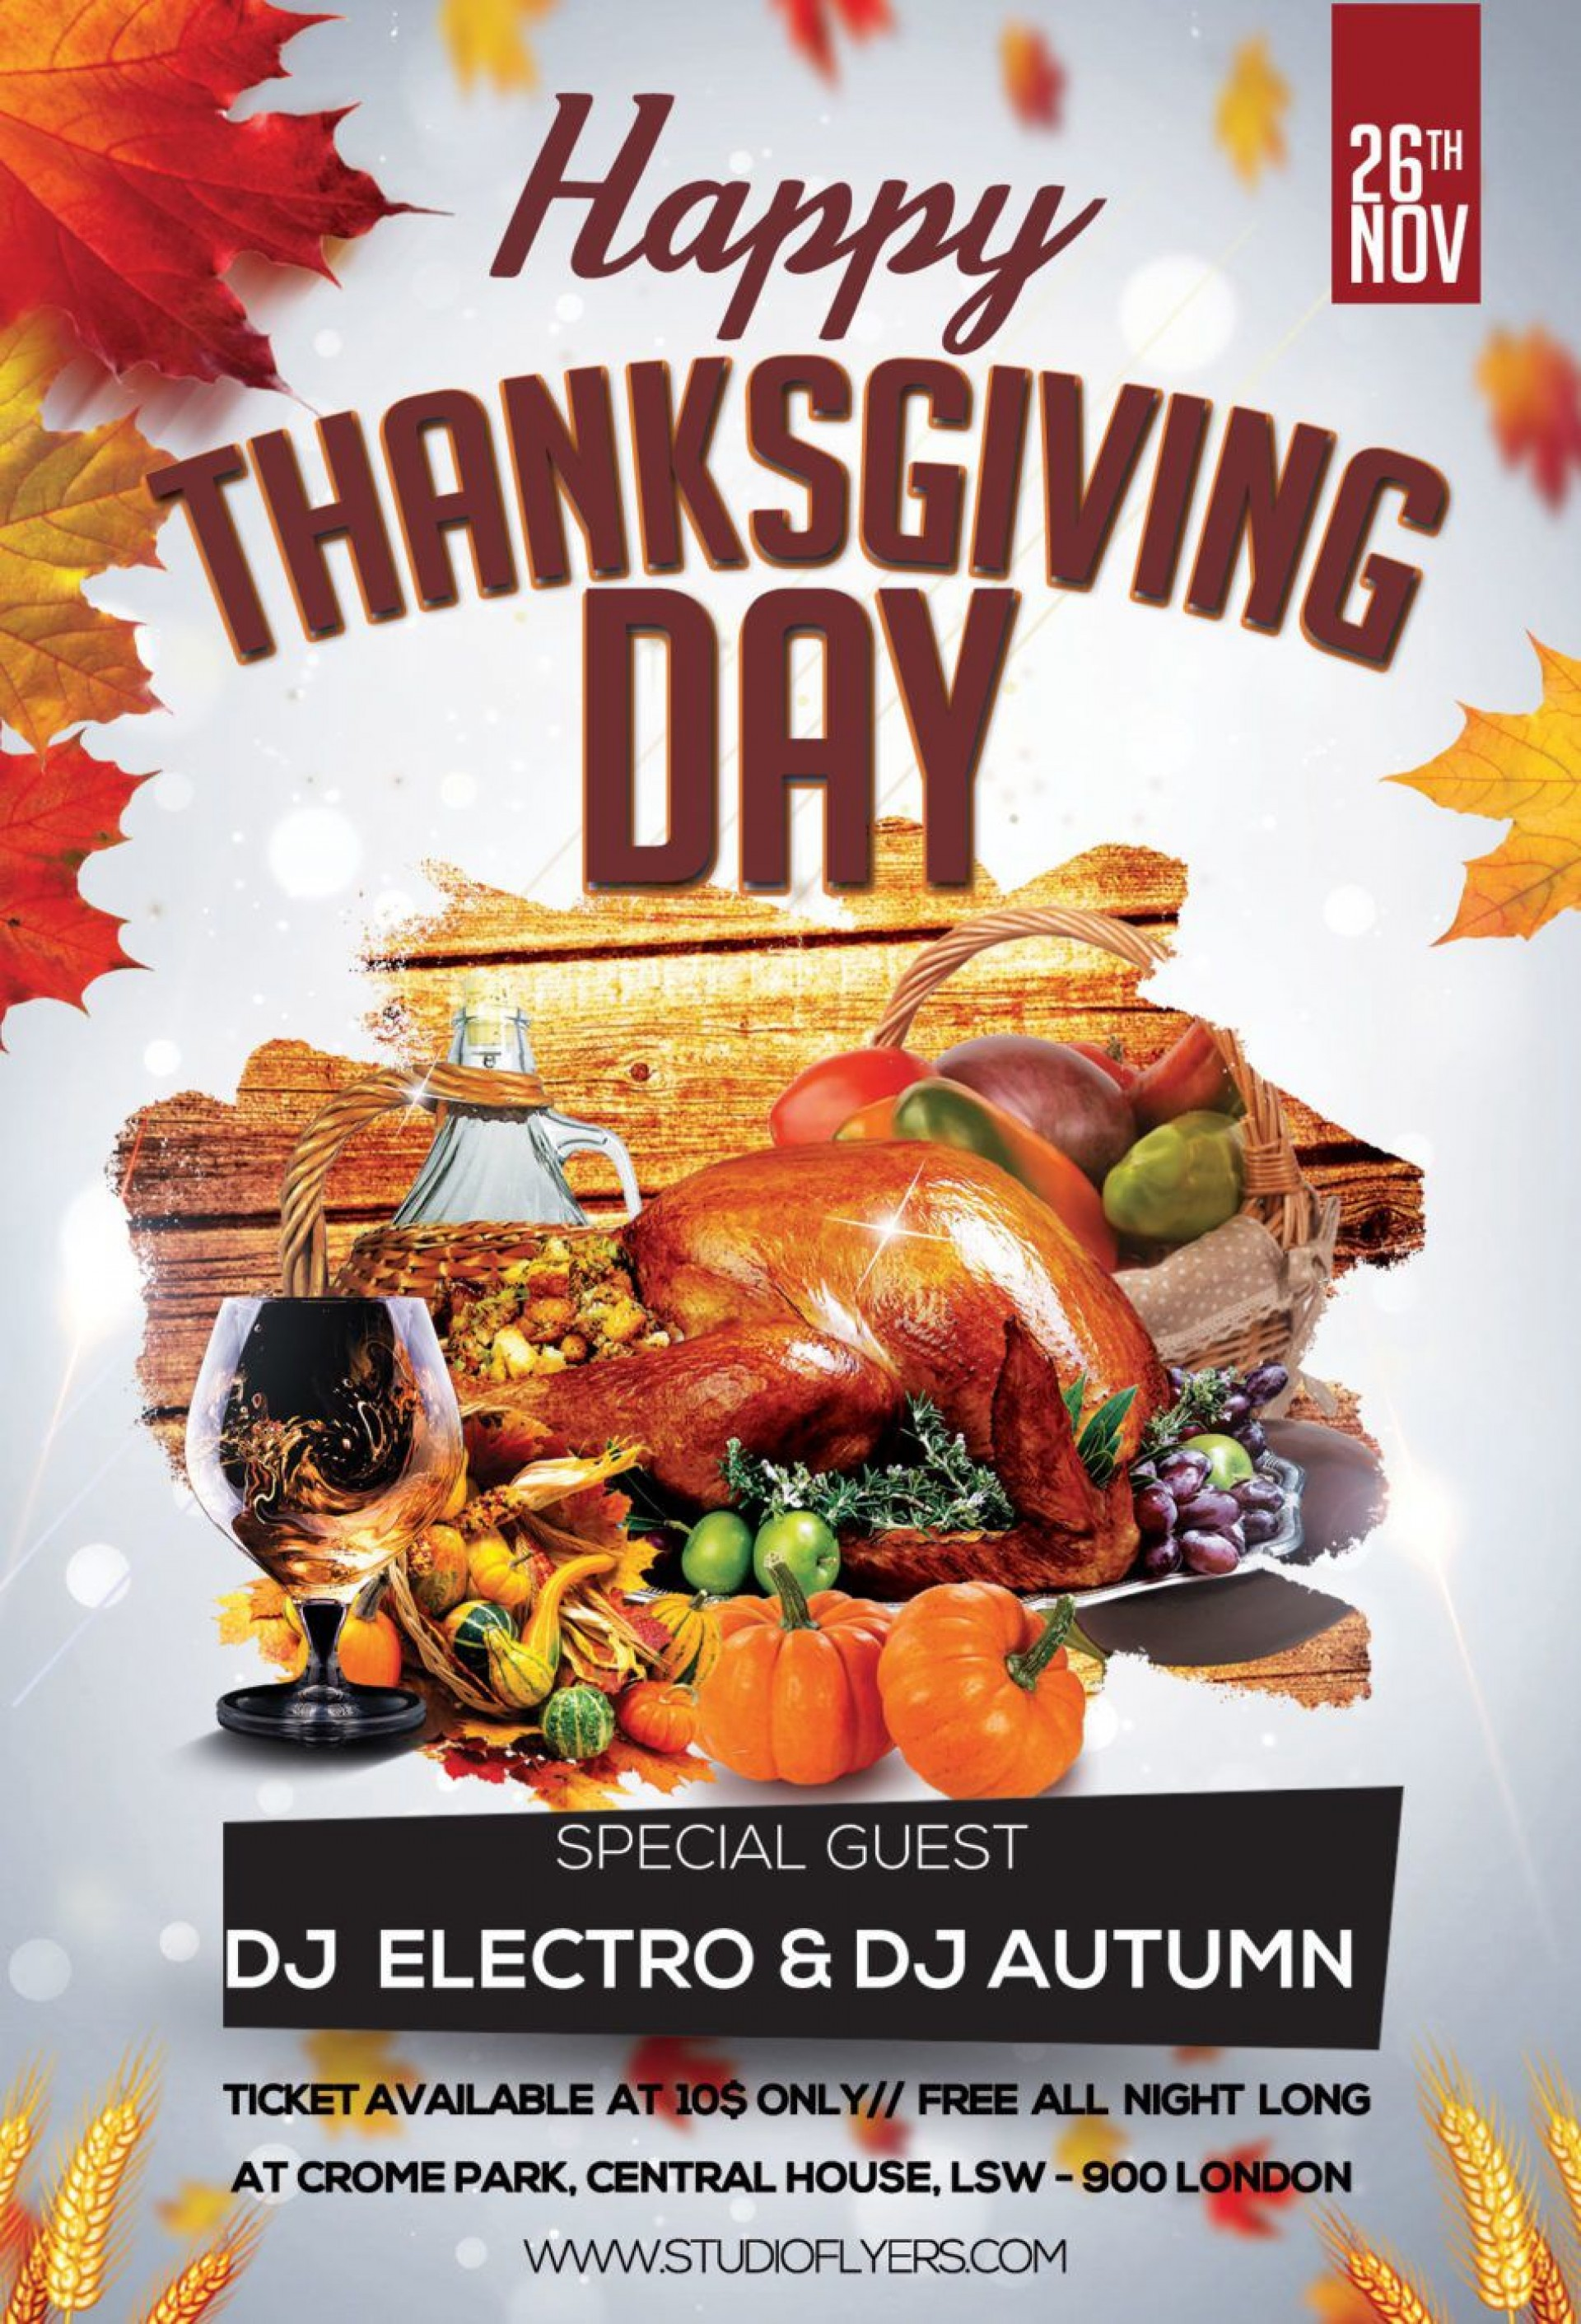 007 Fantastic Thanksgiving Flyer Template Free Example  Food Drive Party1920